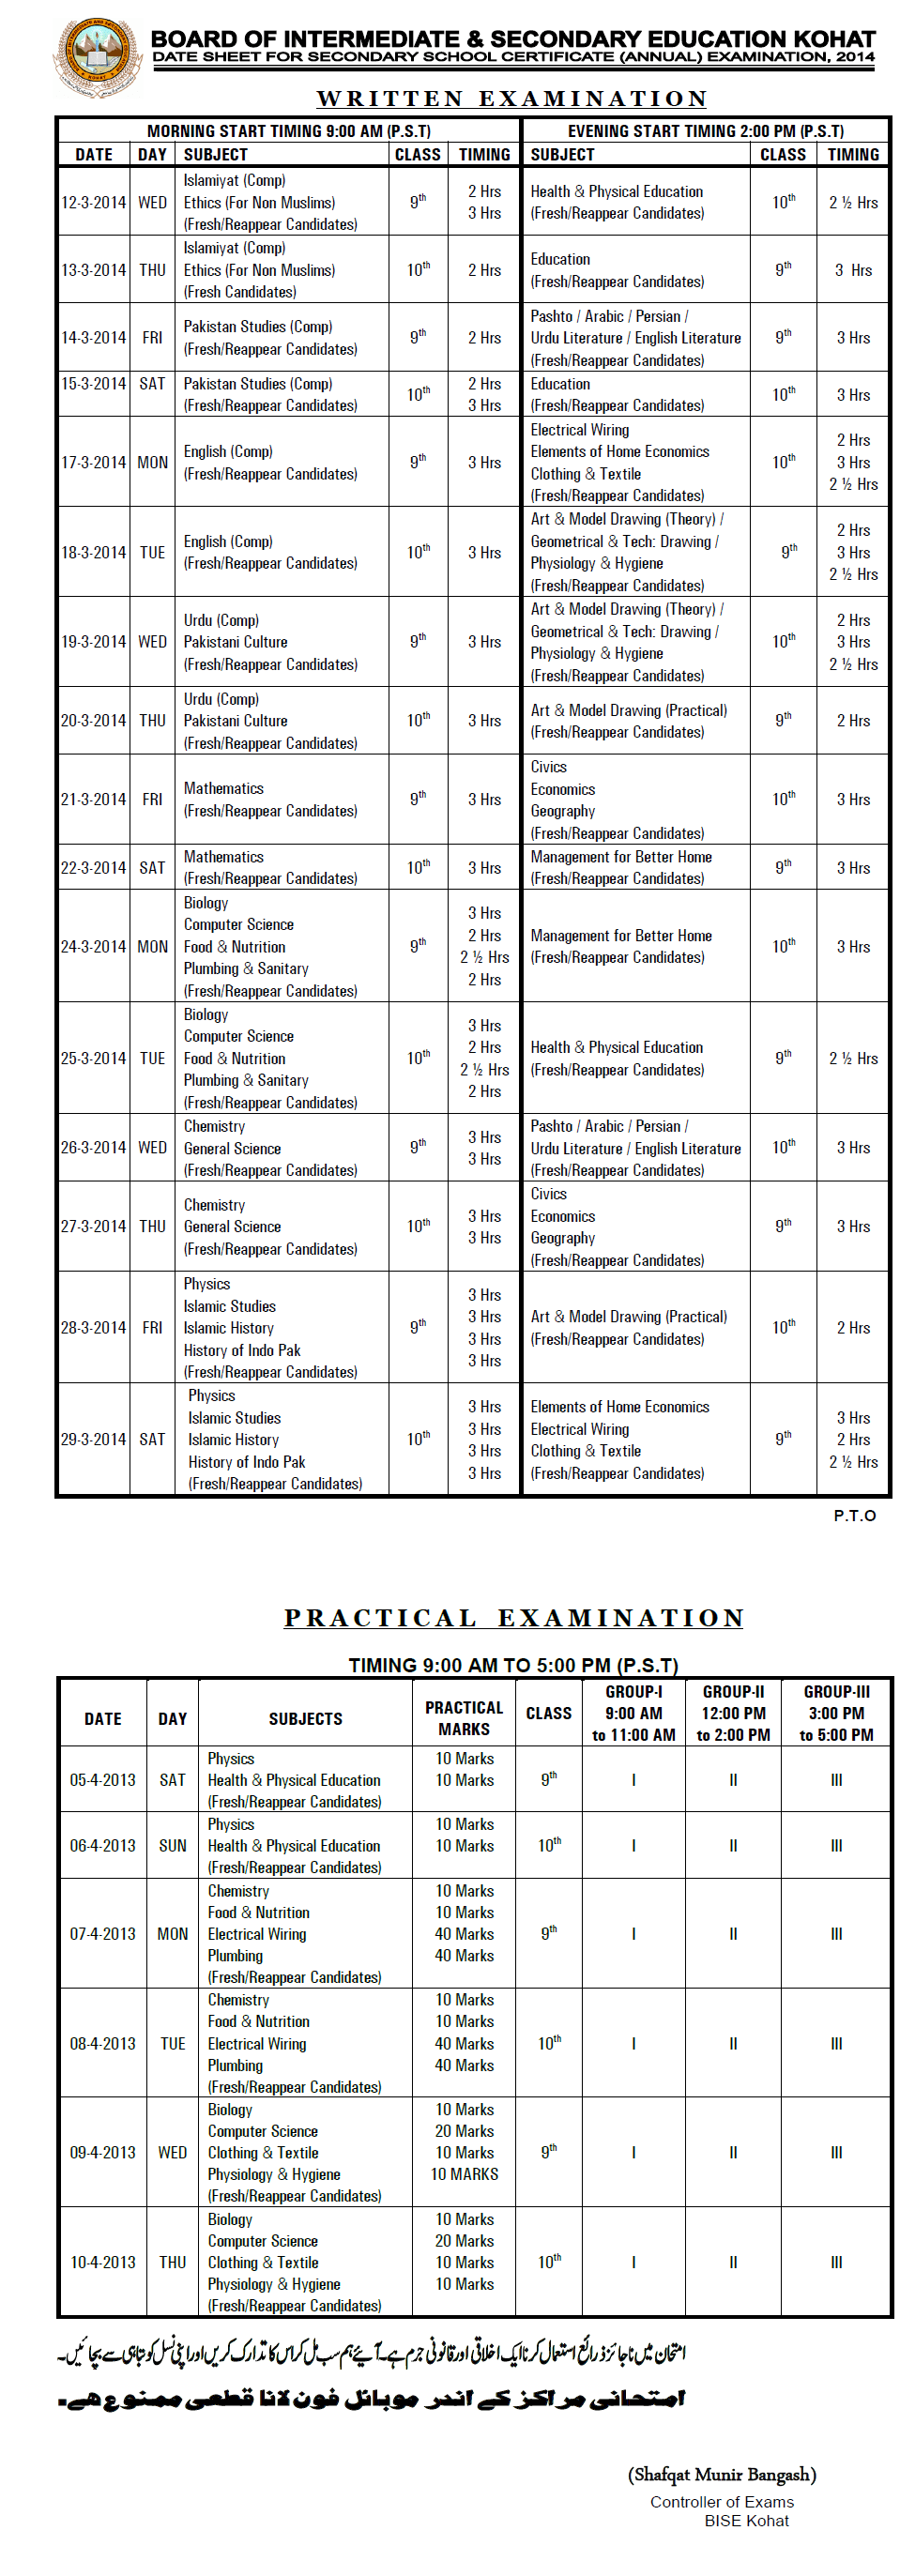 BISE Kohat Board SSC 9th, 10th Class Date Sheet 2015